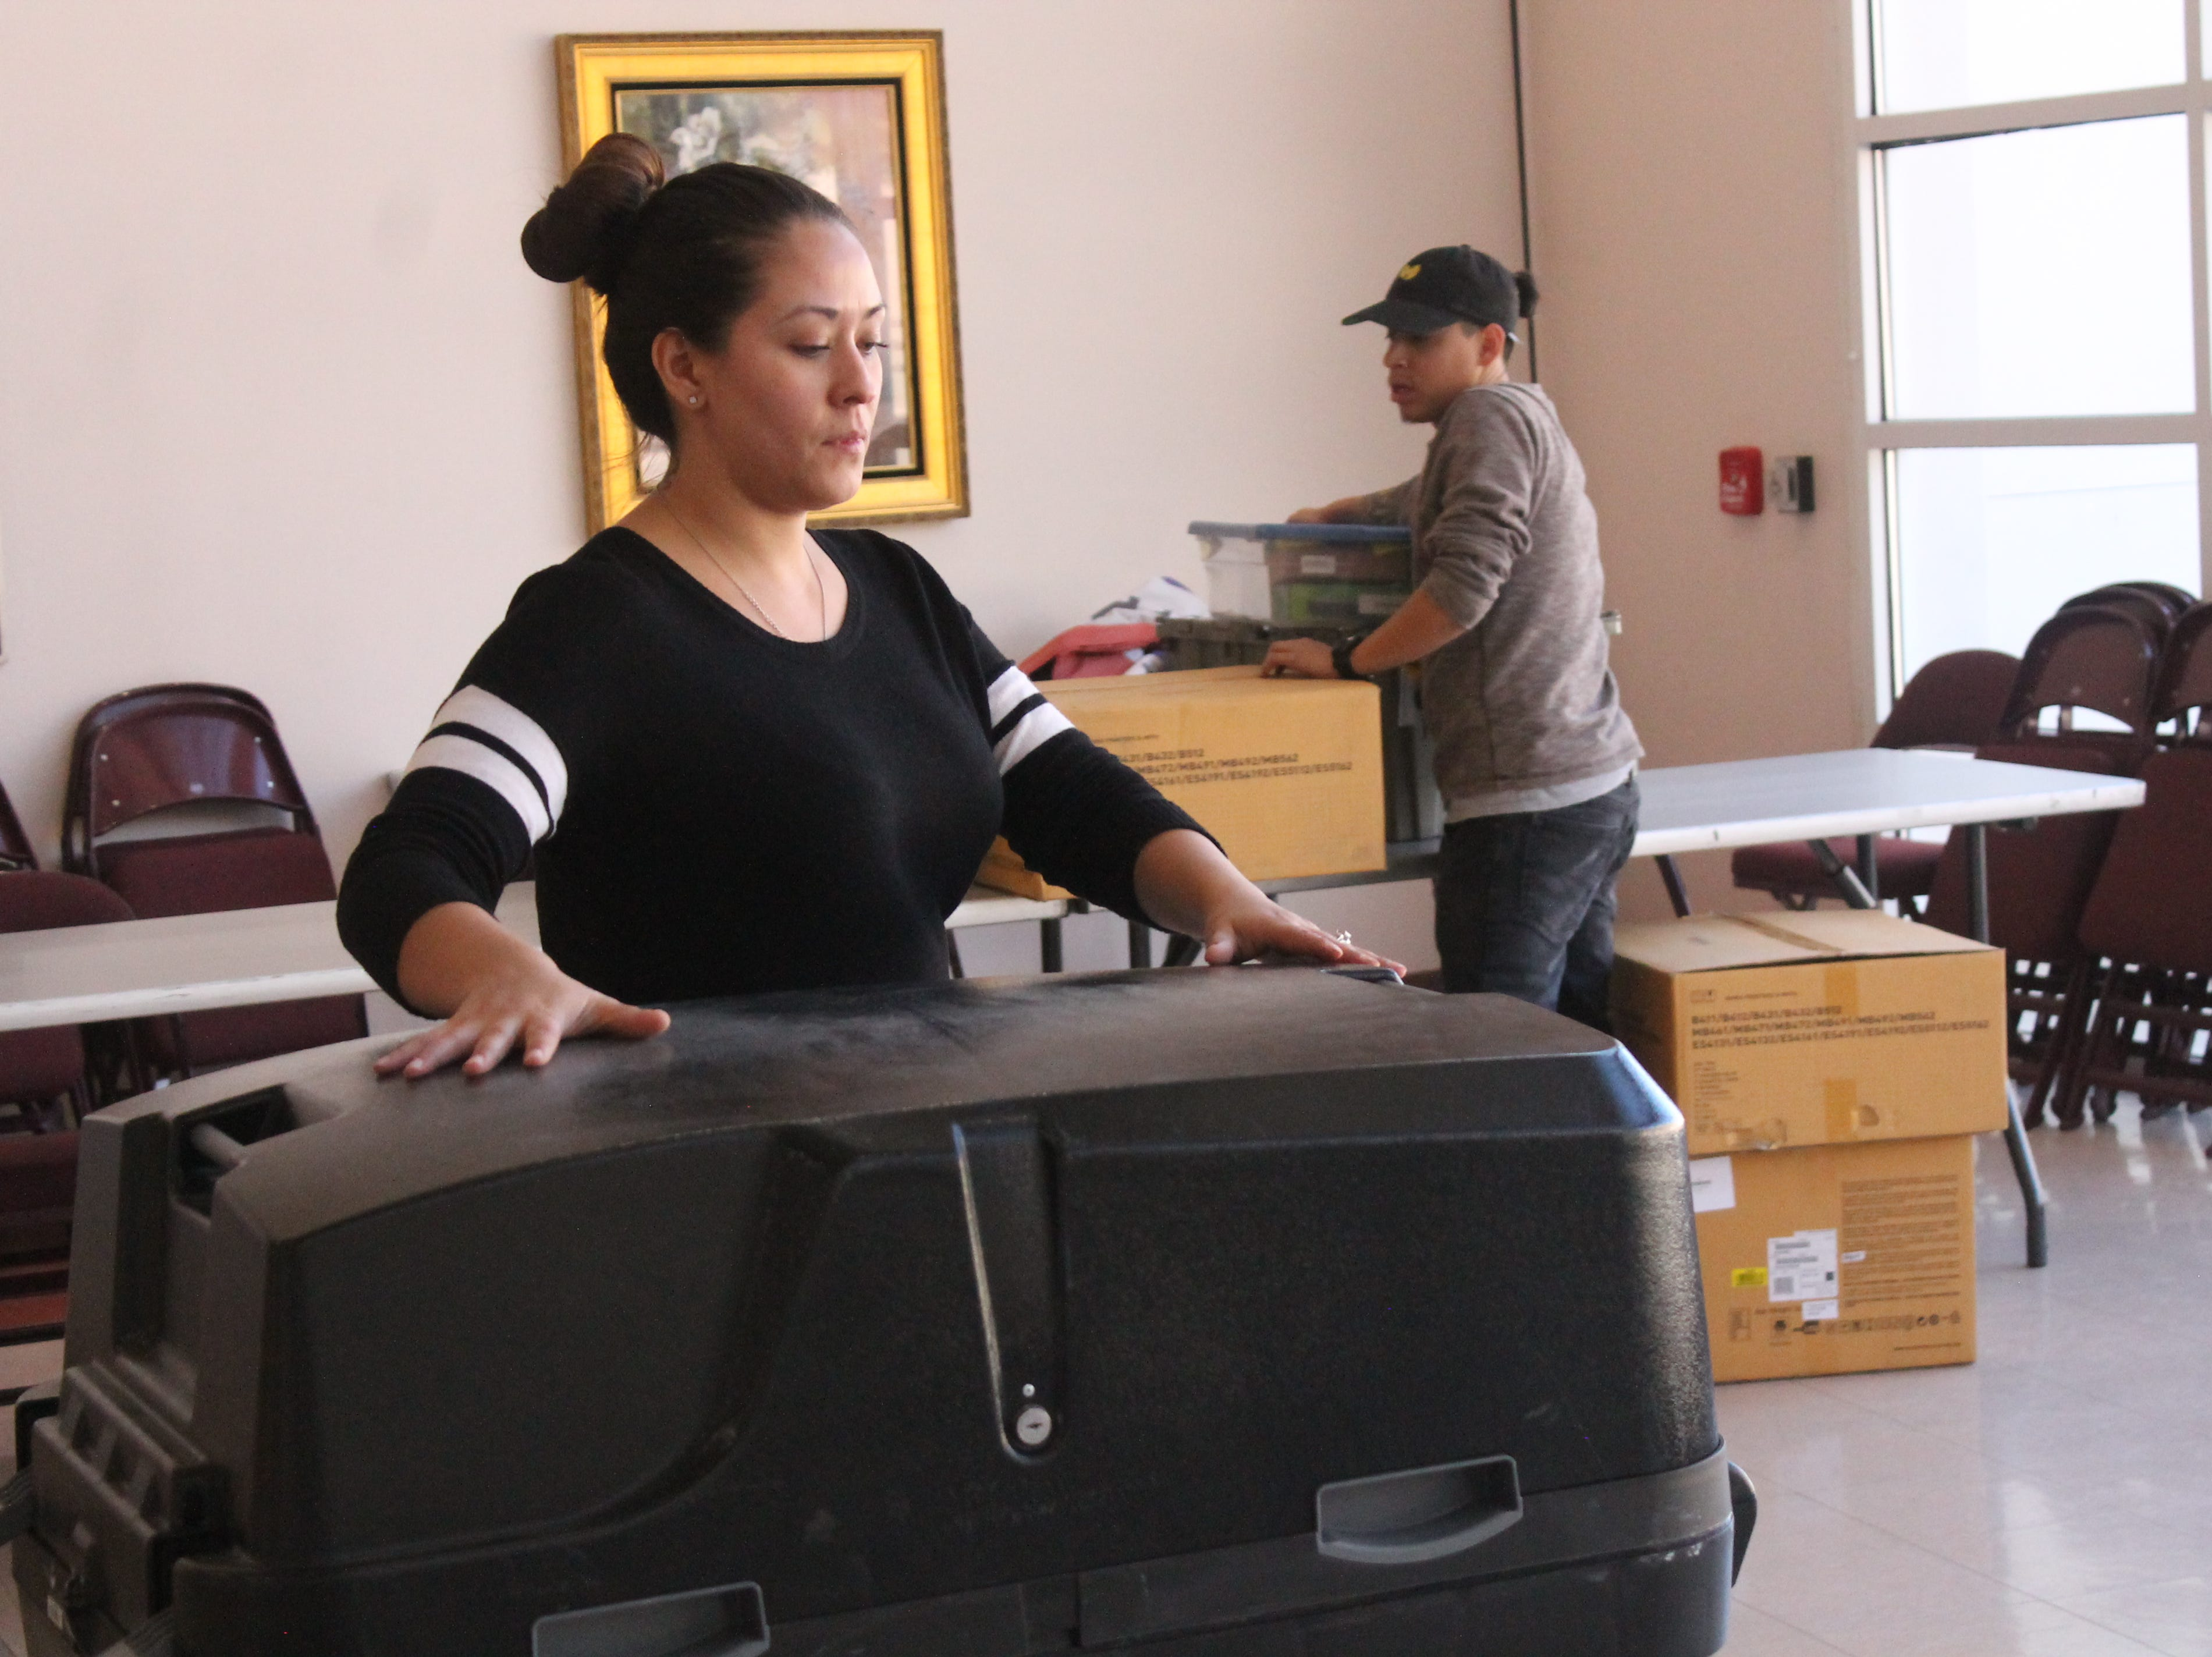 Monique Maynez and Adam Baca work to set up polling stations for the 2018 midterm elections at the Tays Center. Workers began setting up equipment for voting on Nov. 6 began as soon as early voting ended on Nov. 3.